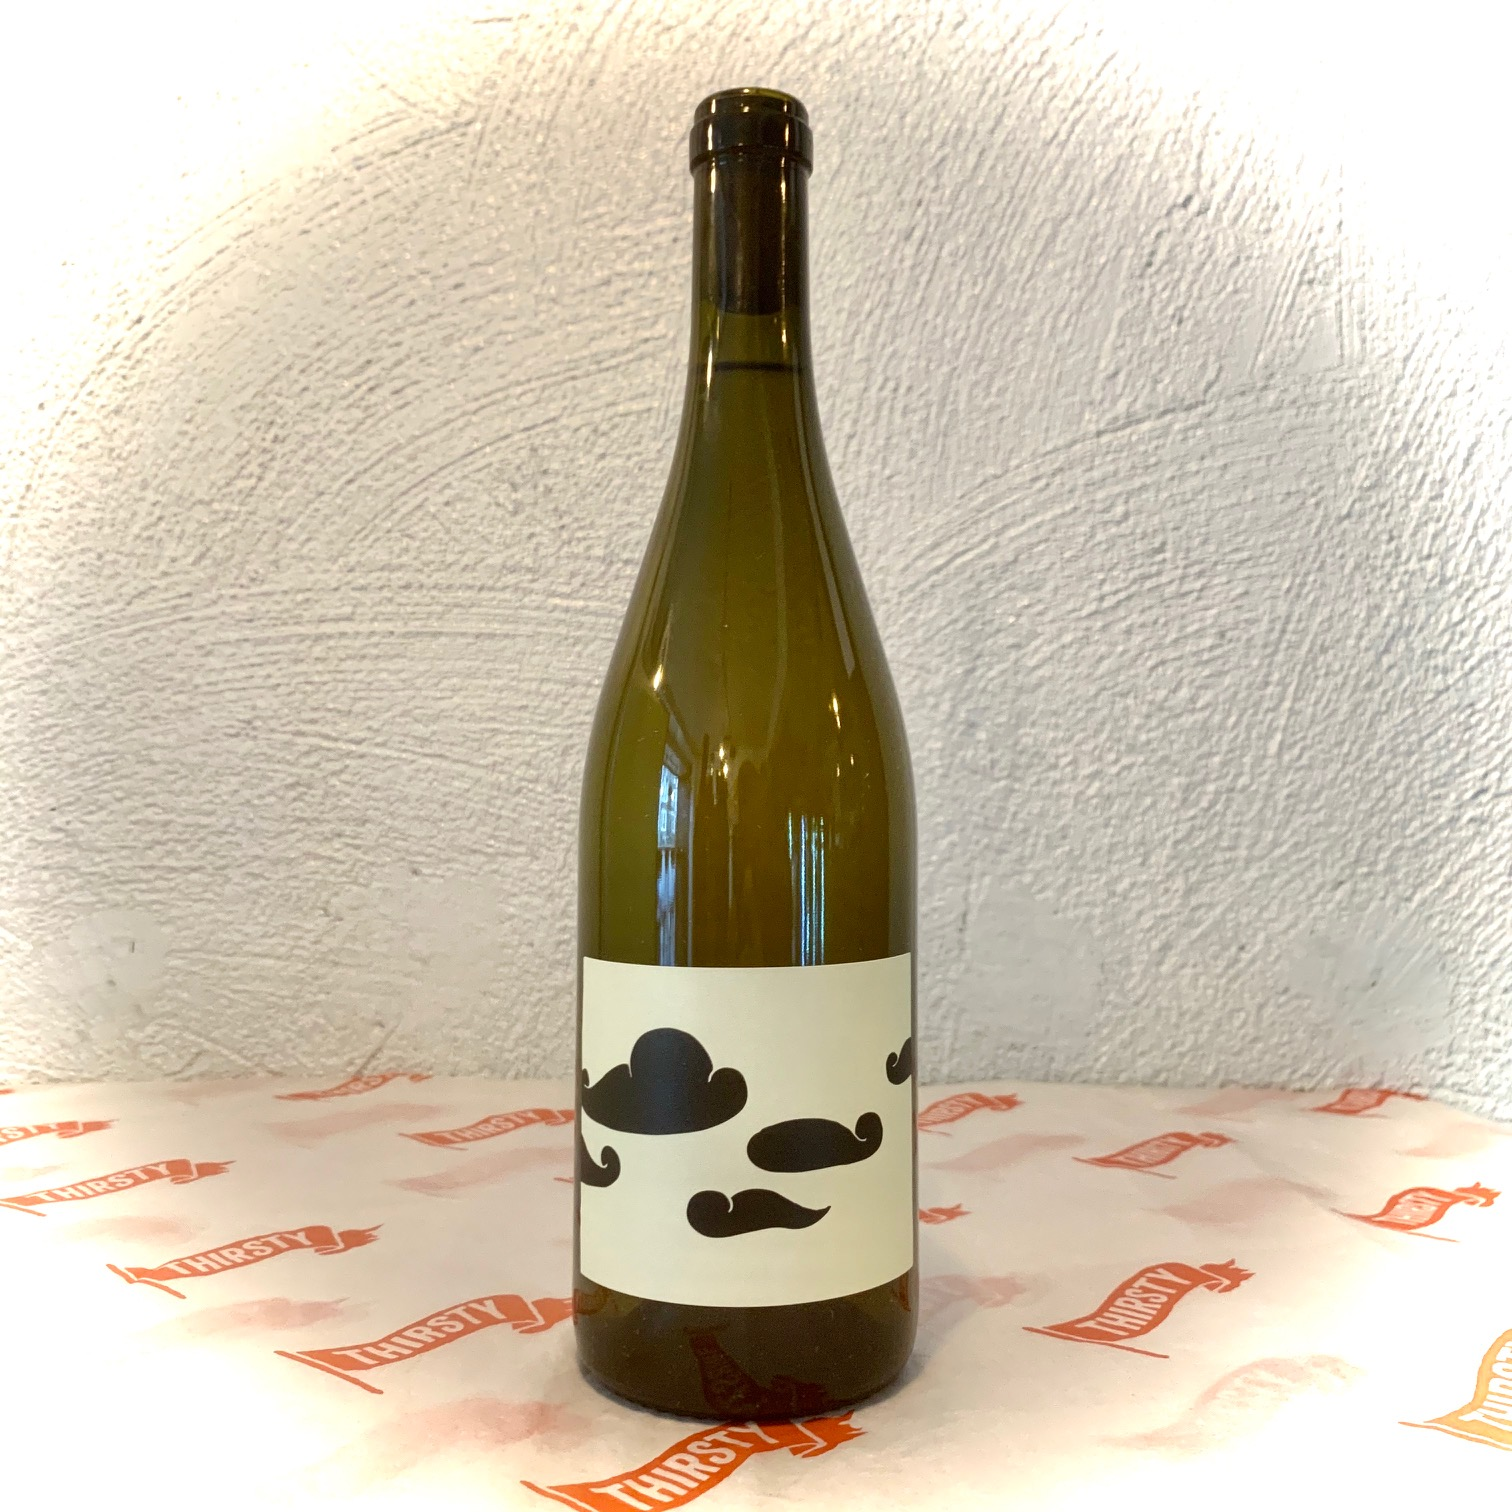 Gentle Folk Clouds Aussie Riesling